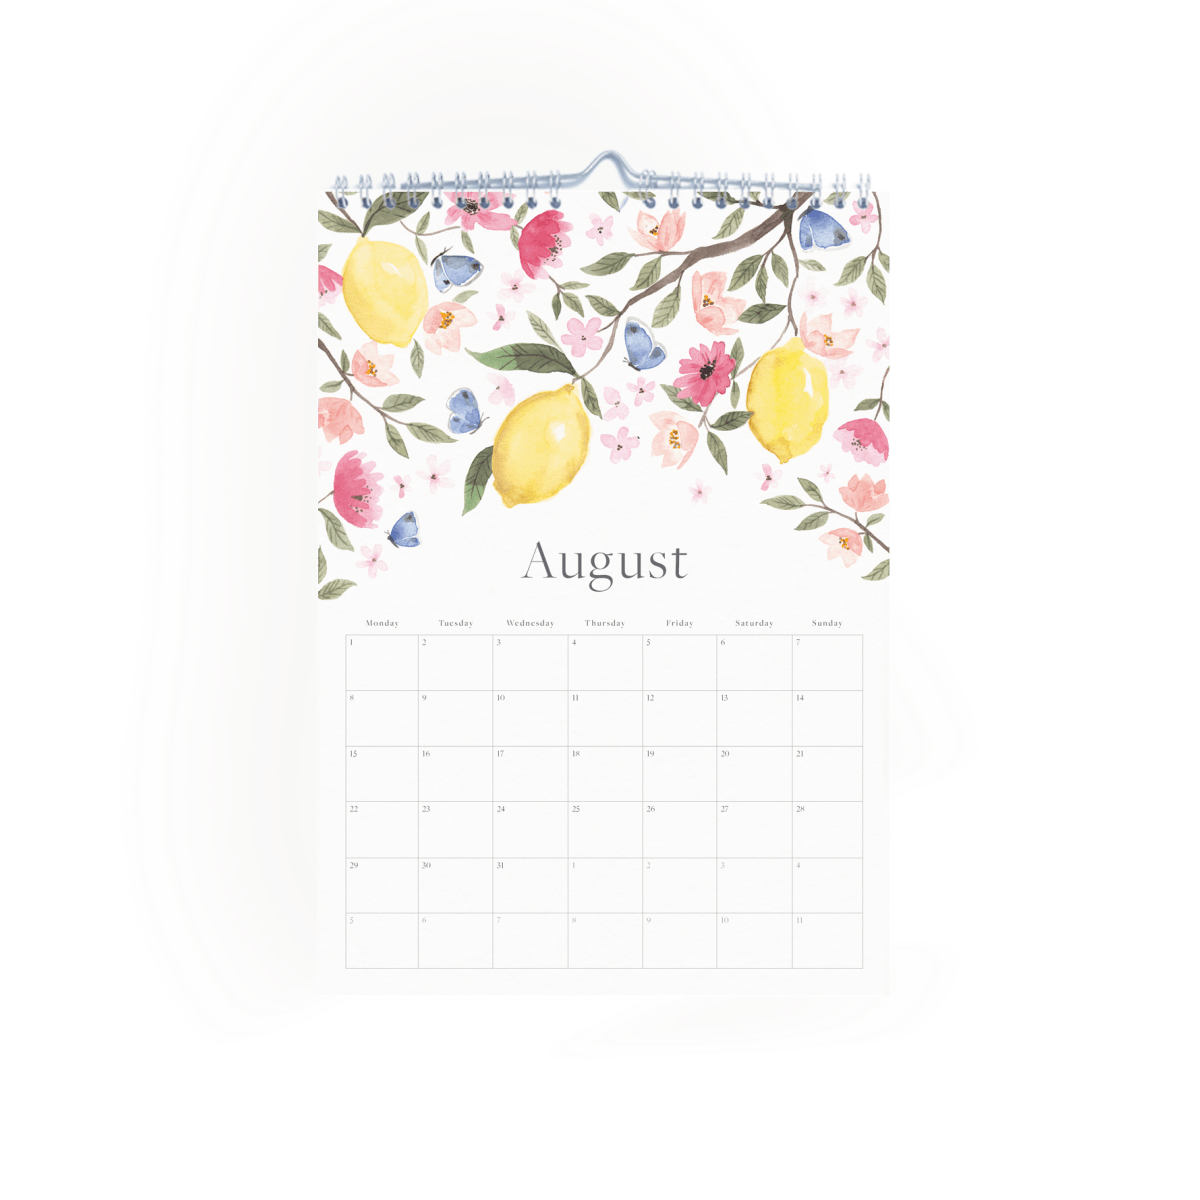 Https%3a%2f%2fwww.papier.com%2fproduct image%2f89567%2f77%2f2020 floral calendar 22446 august 1569859525.png?ixlib=rb 1.1